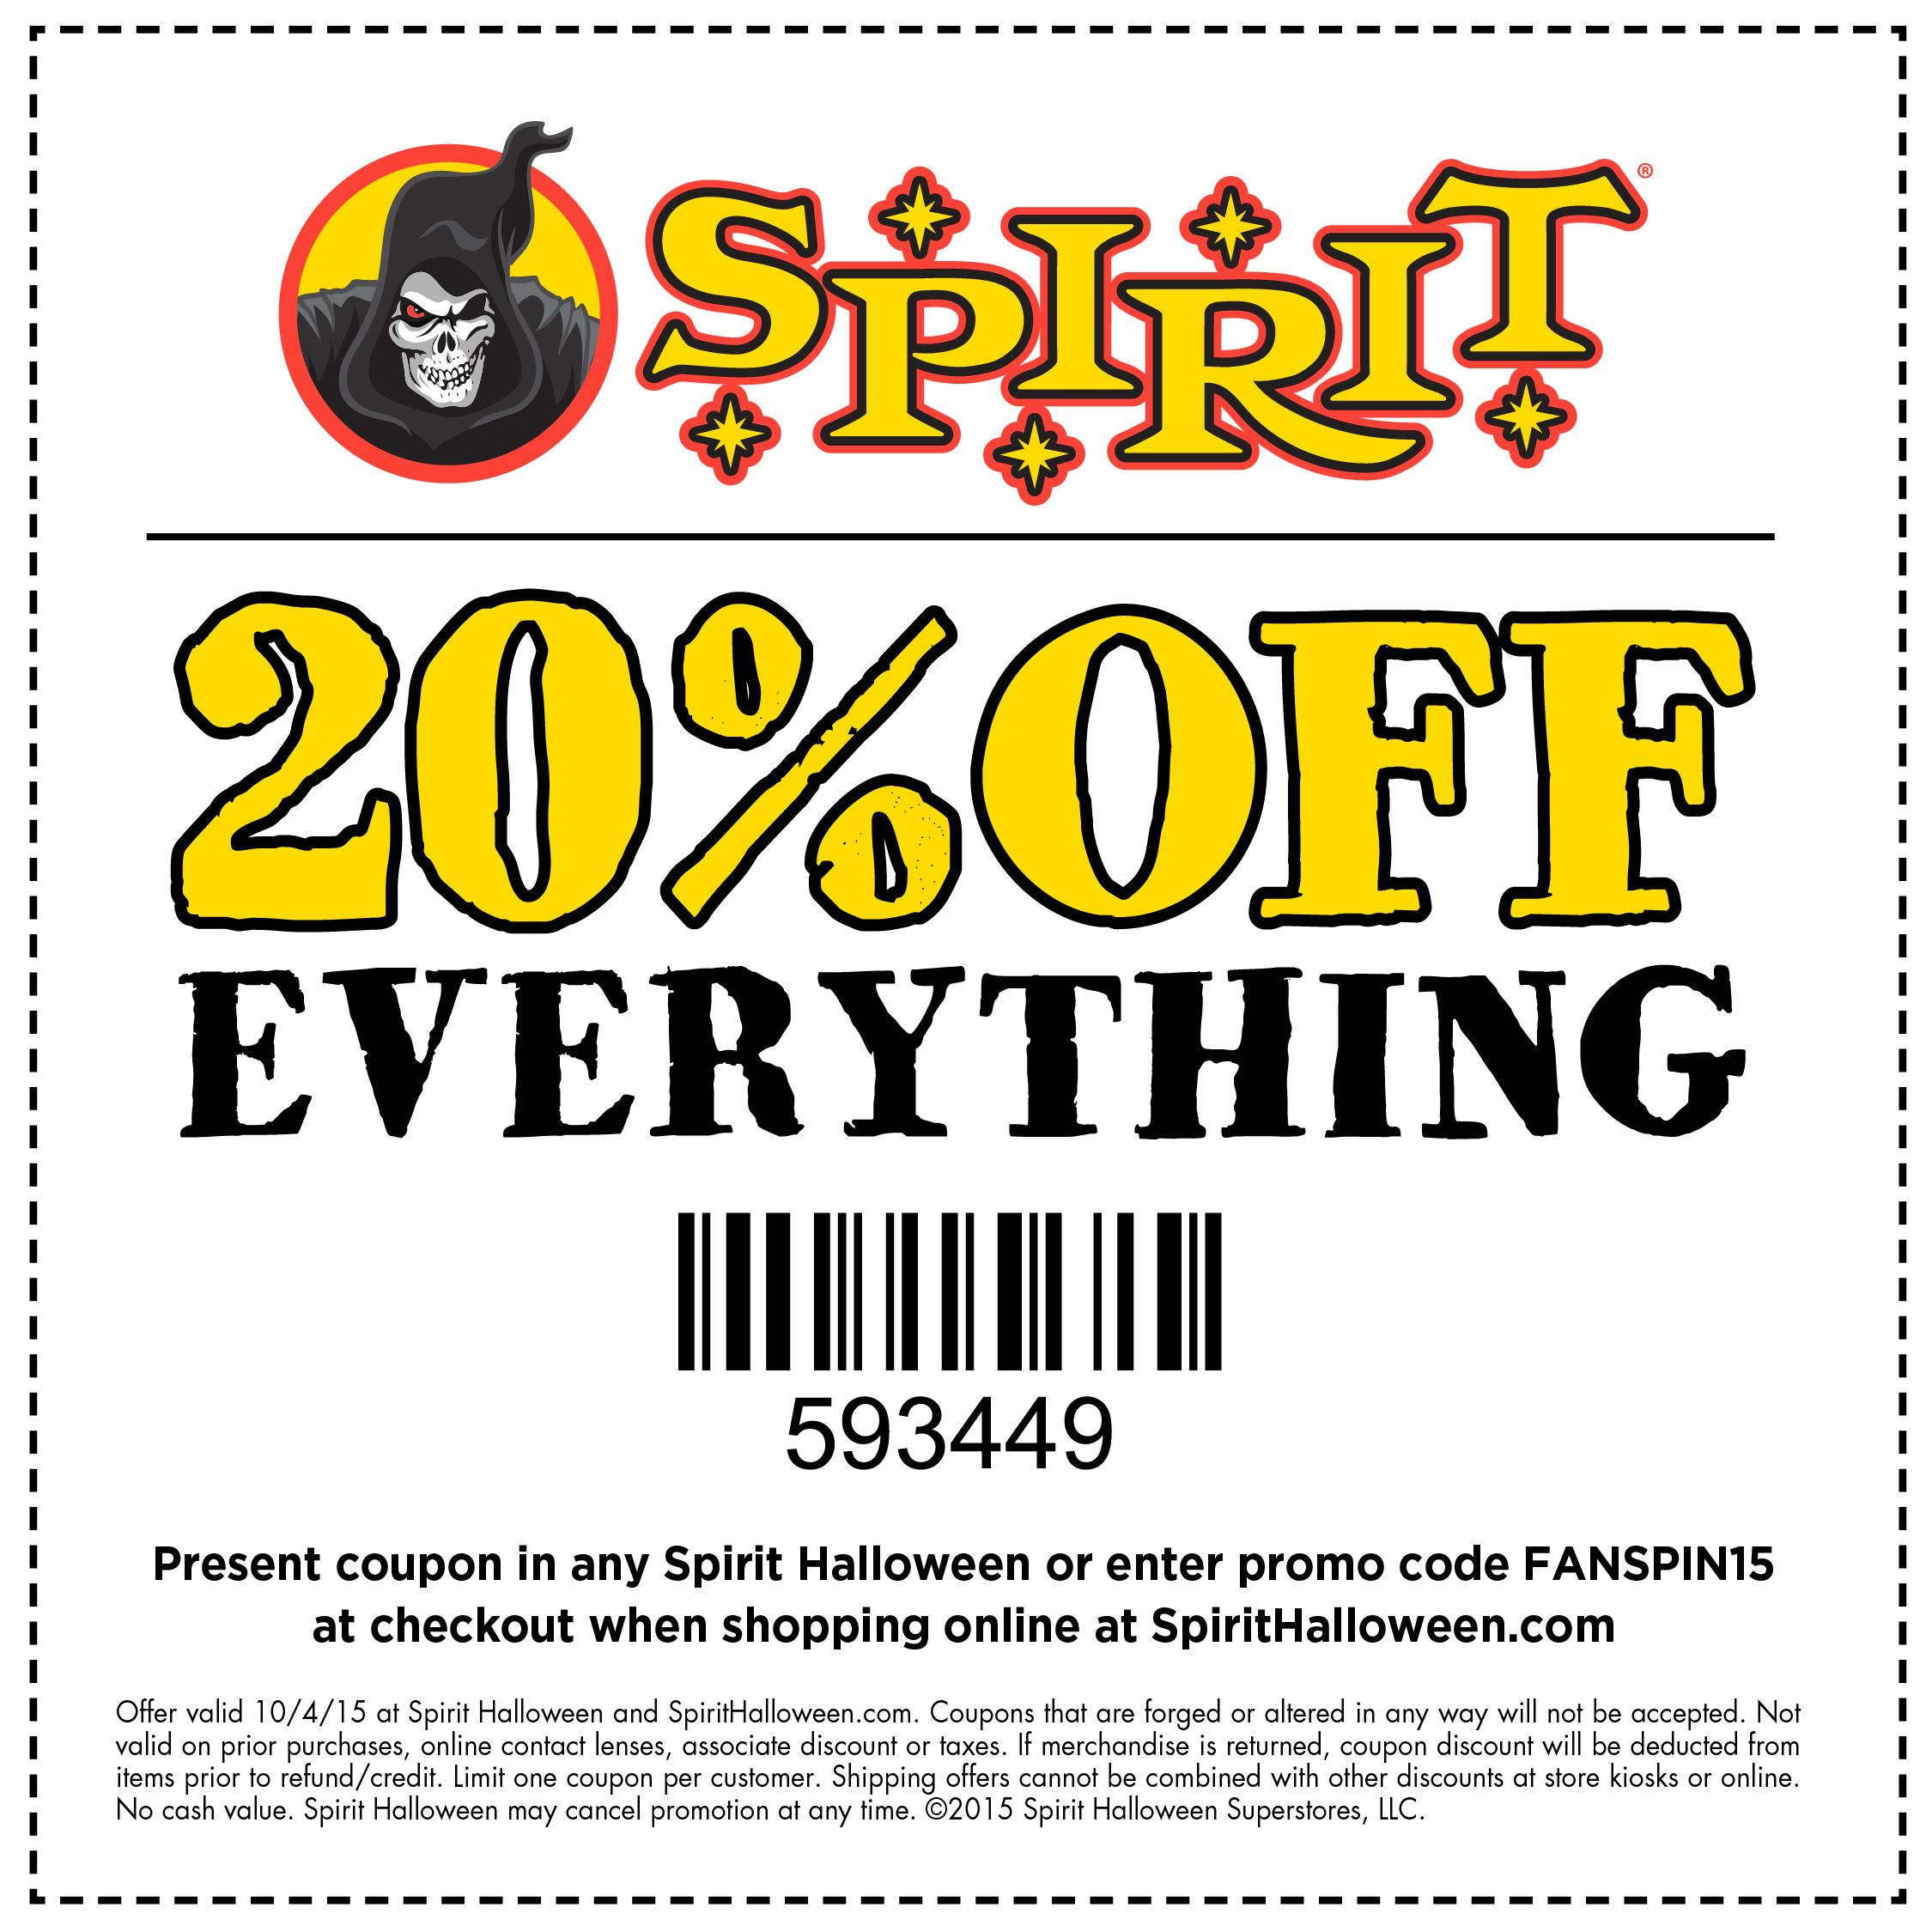 Spirit Halloween Promo Codes 2020 Don't miss out! Save on all your deadly decorations & creeptastic